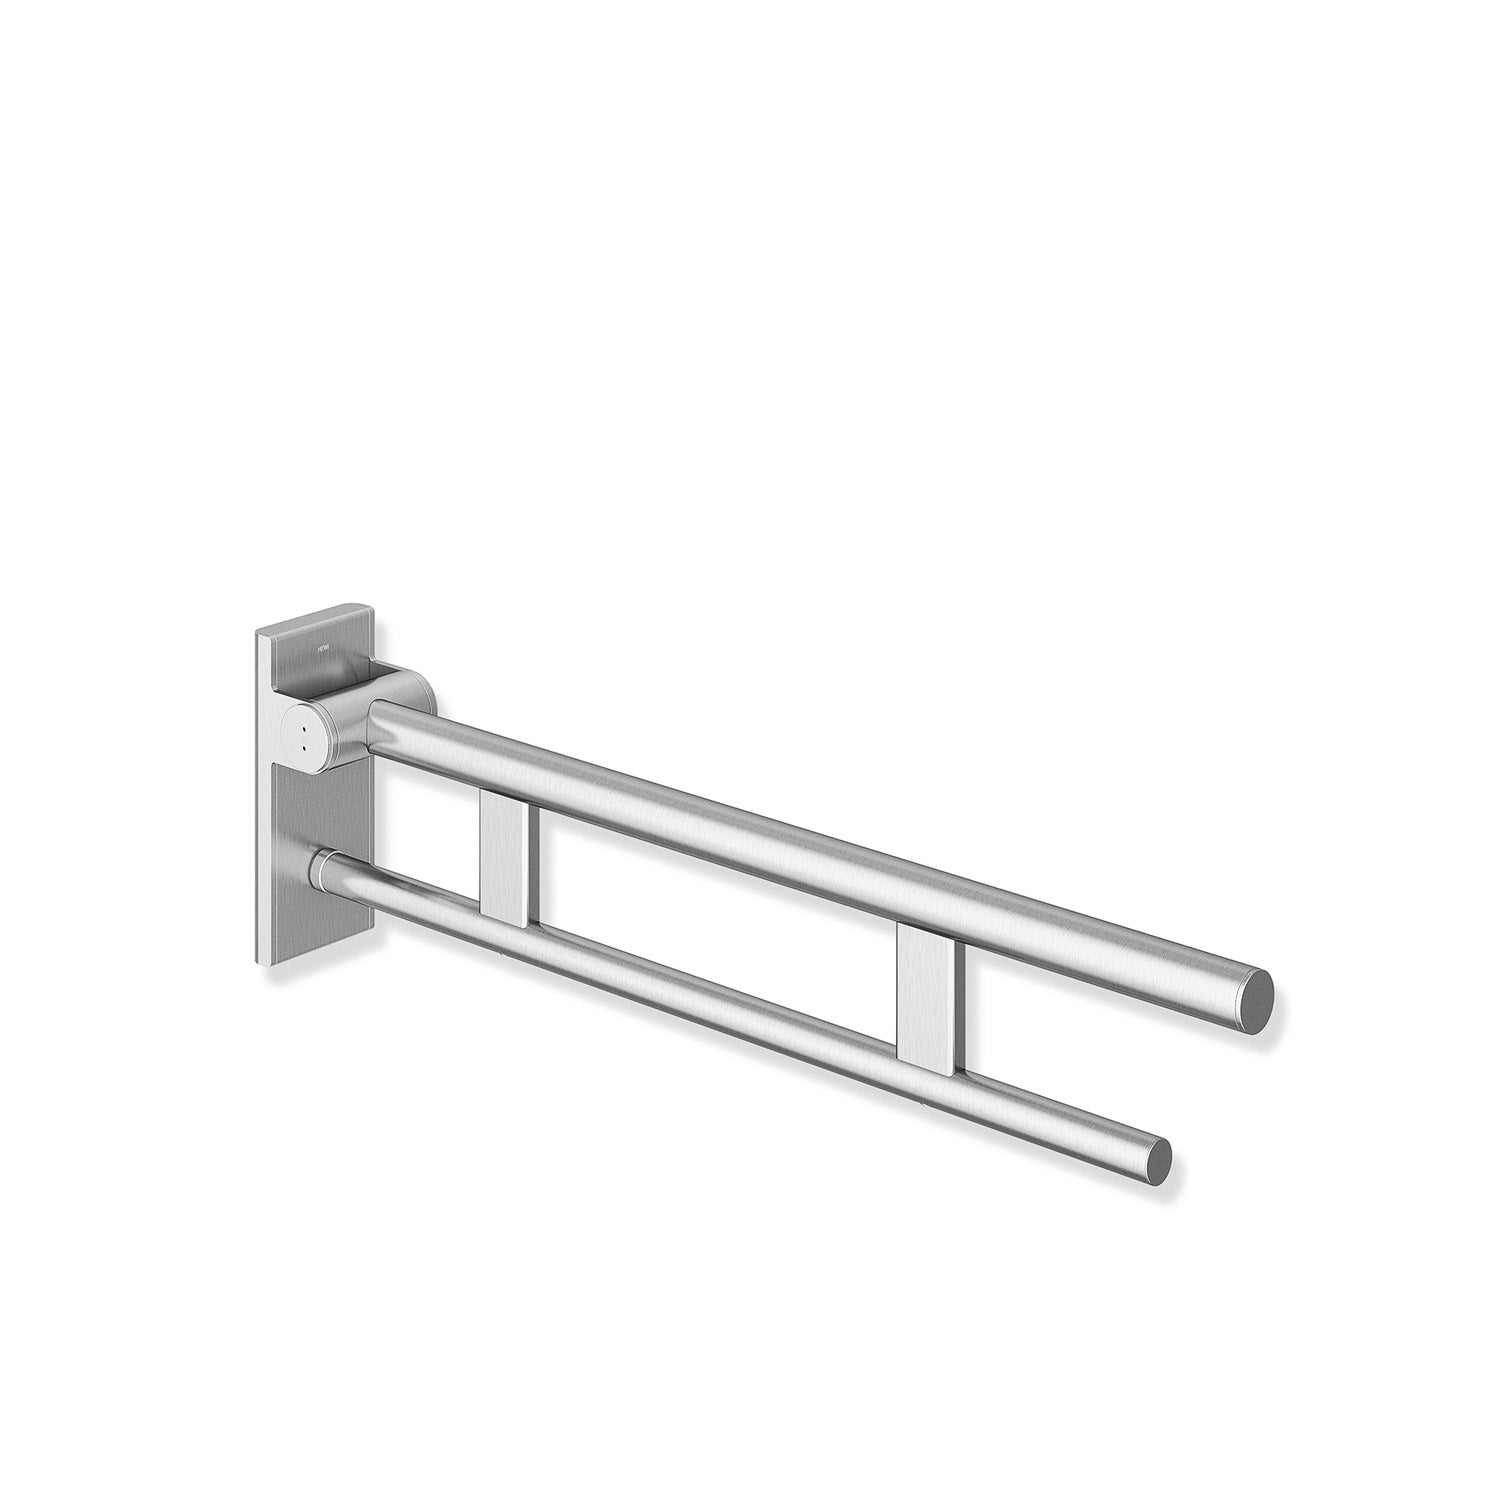 600mm Freestyle Hinged Grab Rail with a satin steel finish on a white background